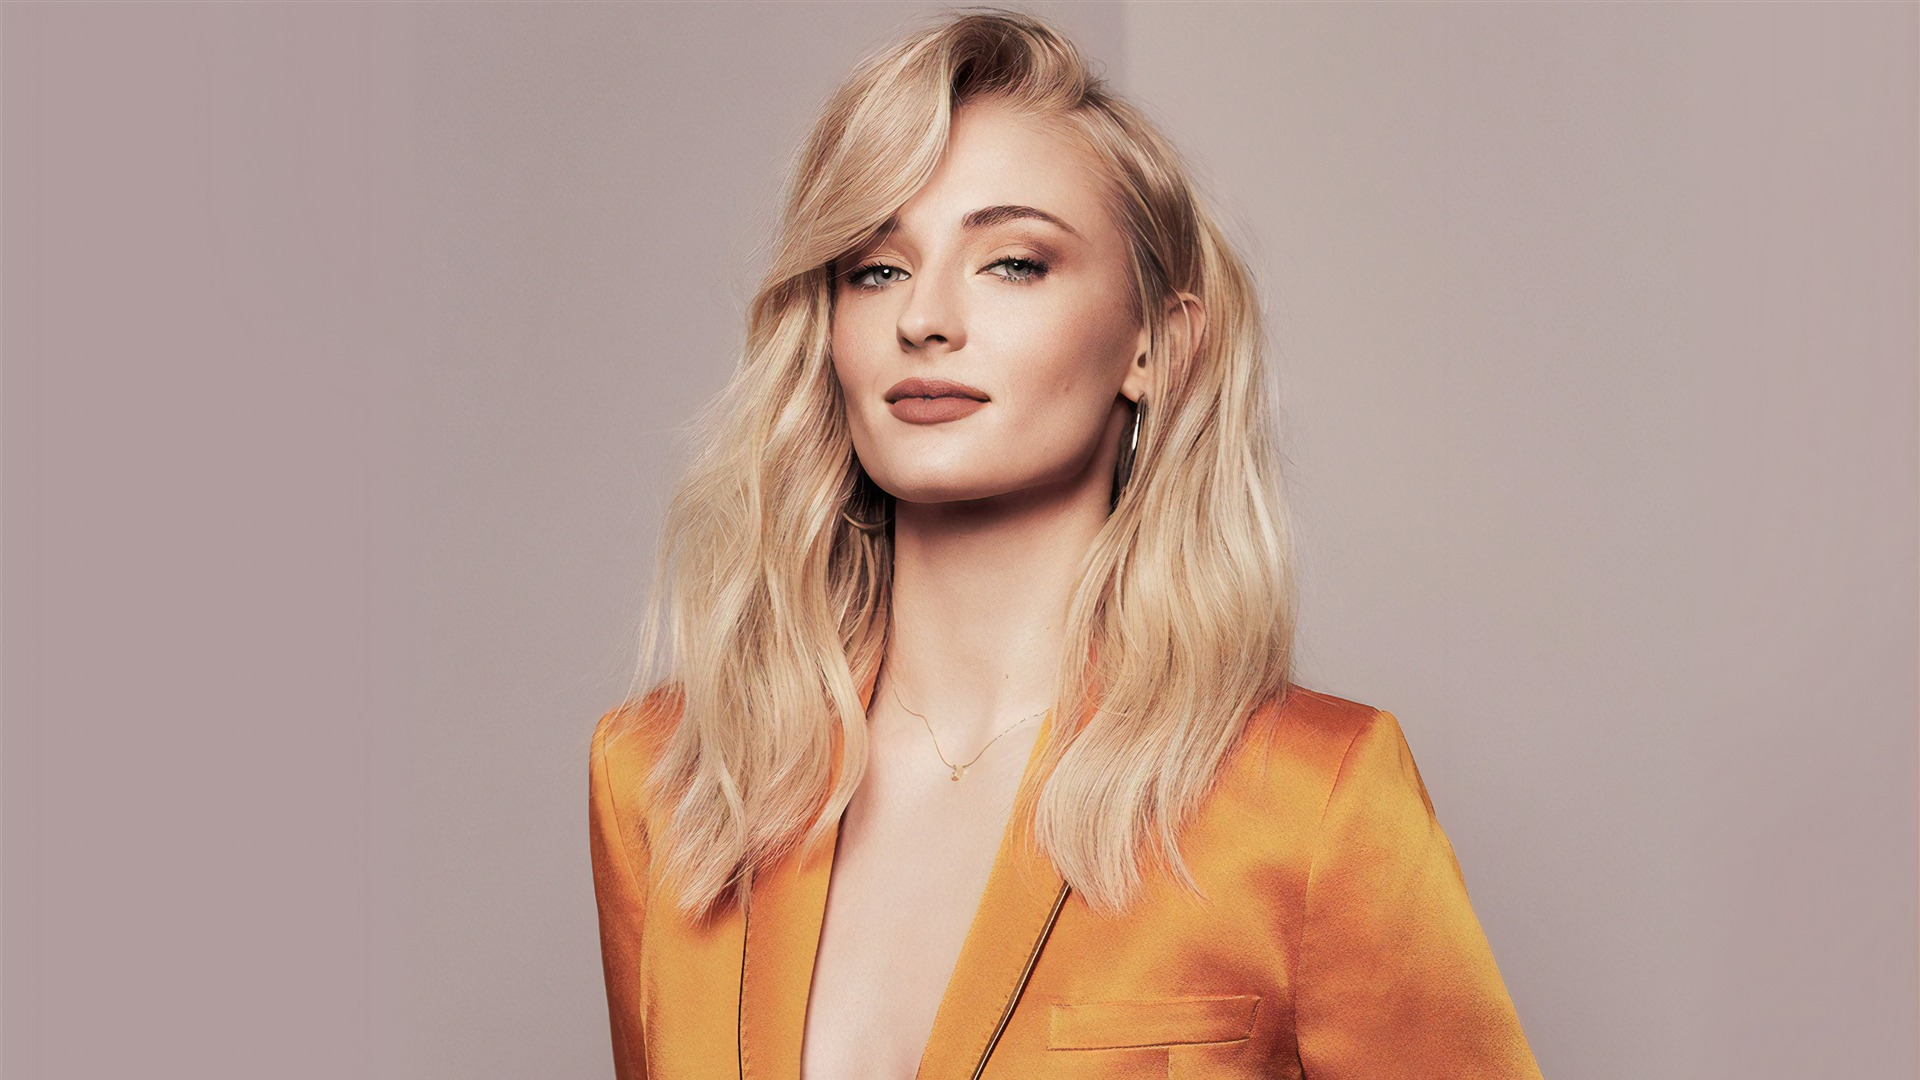 Sophie Turner 2019 Joy Magazine Photoshoot HD Wallpaper